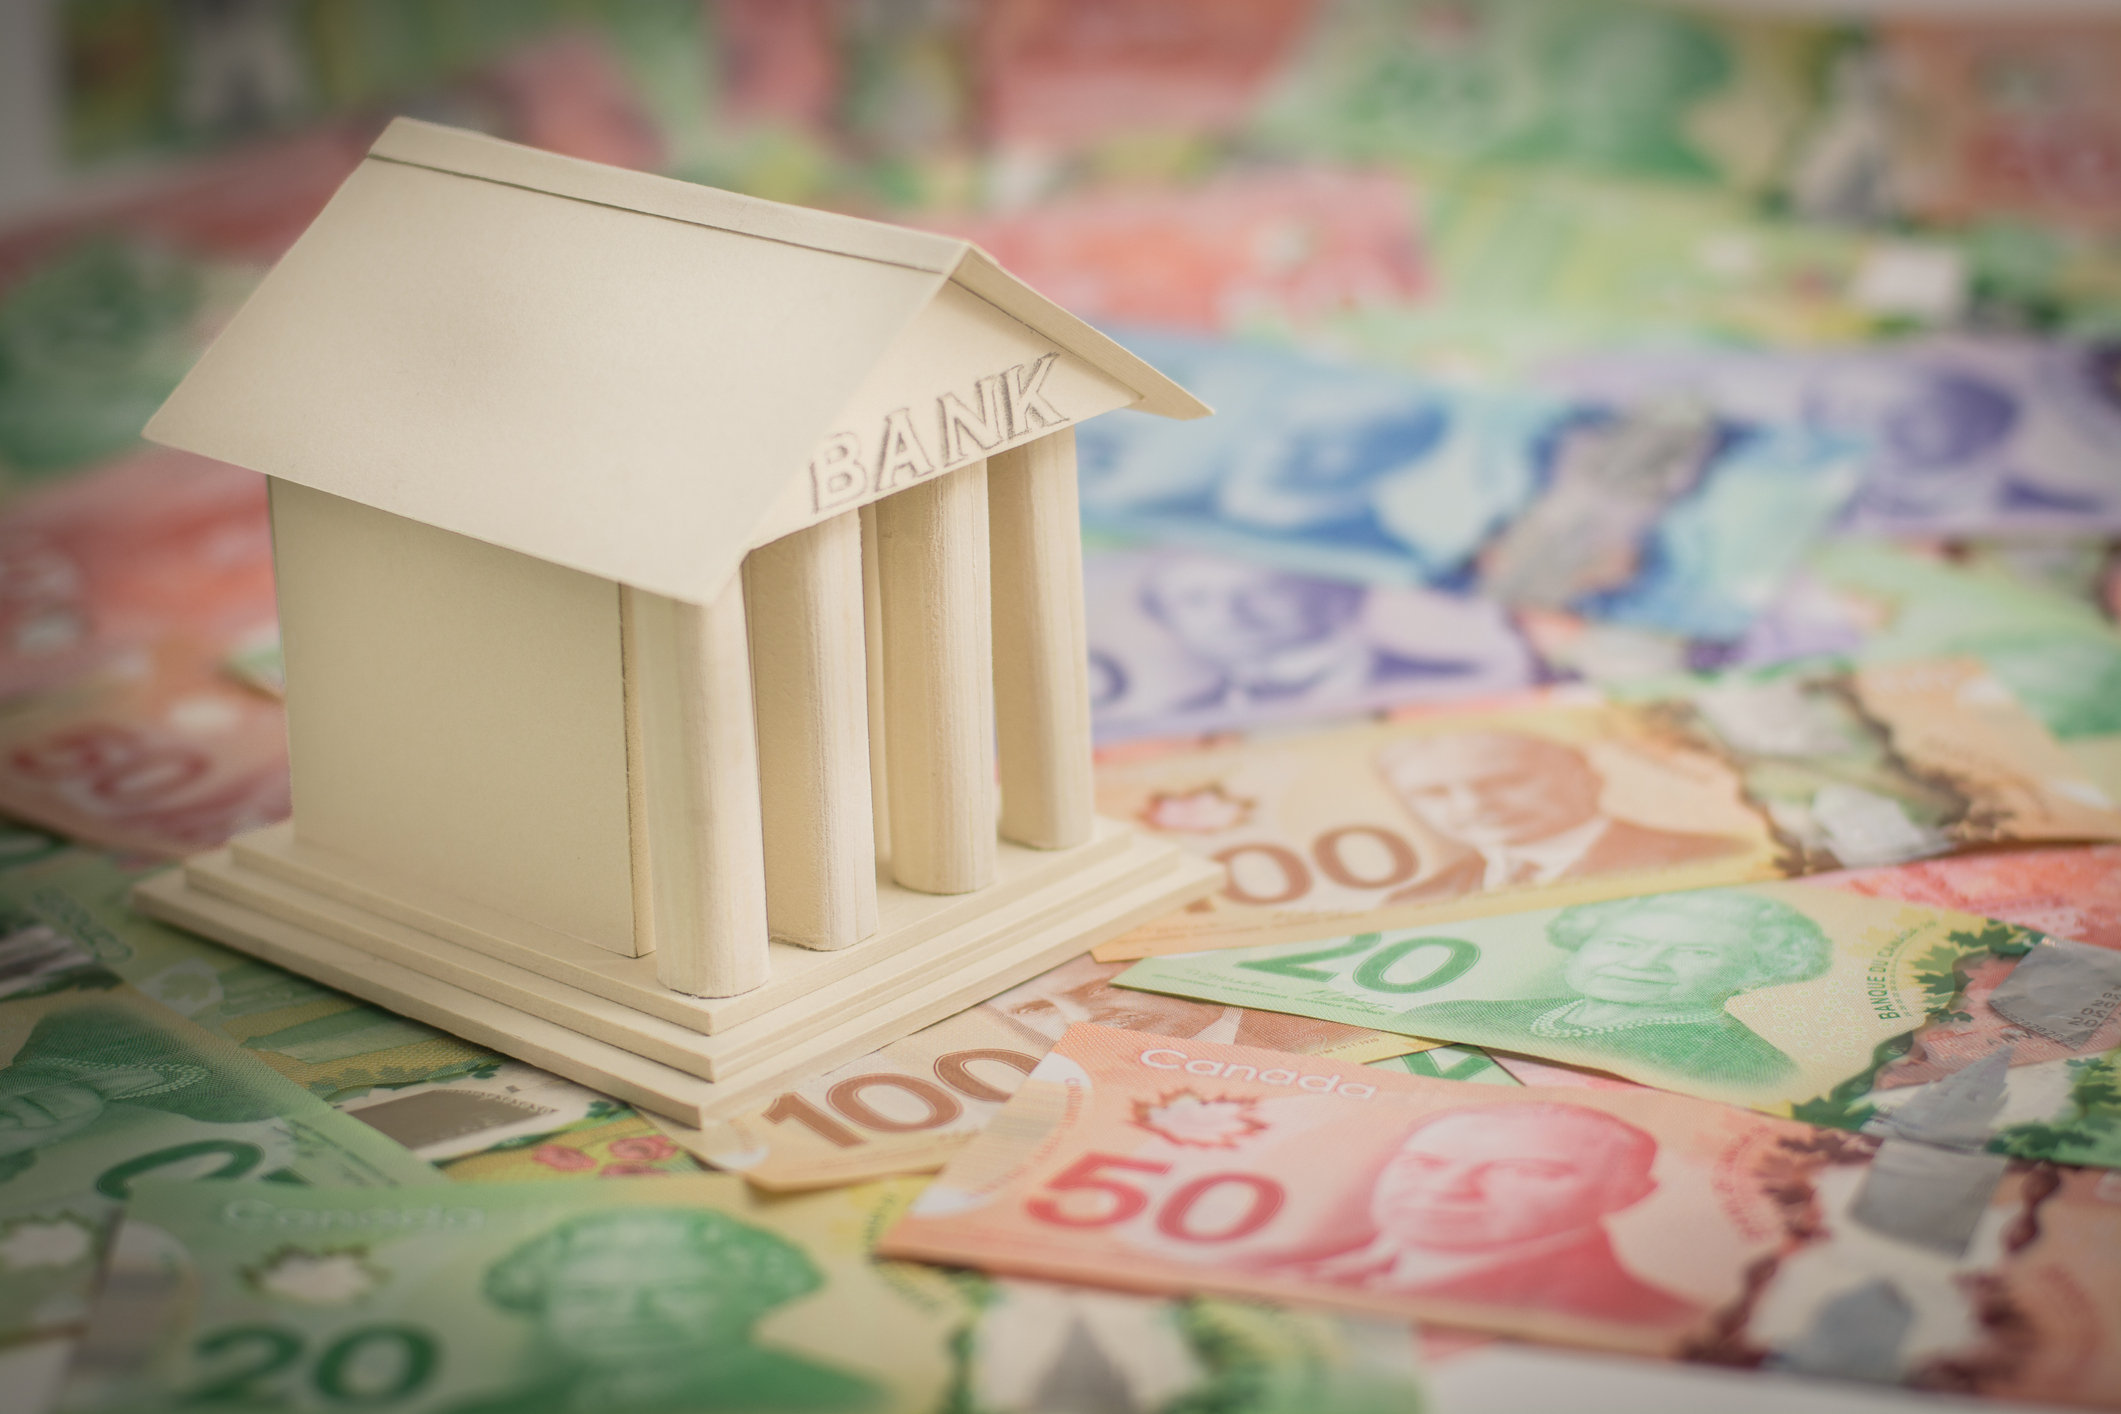 Should the Canadian market open to American banks?